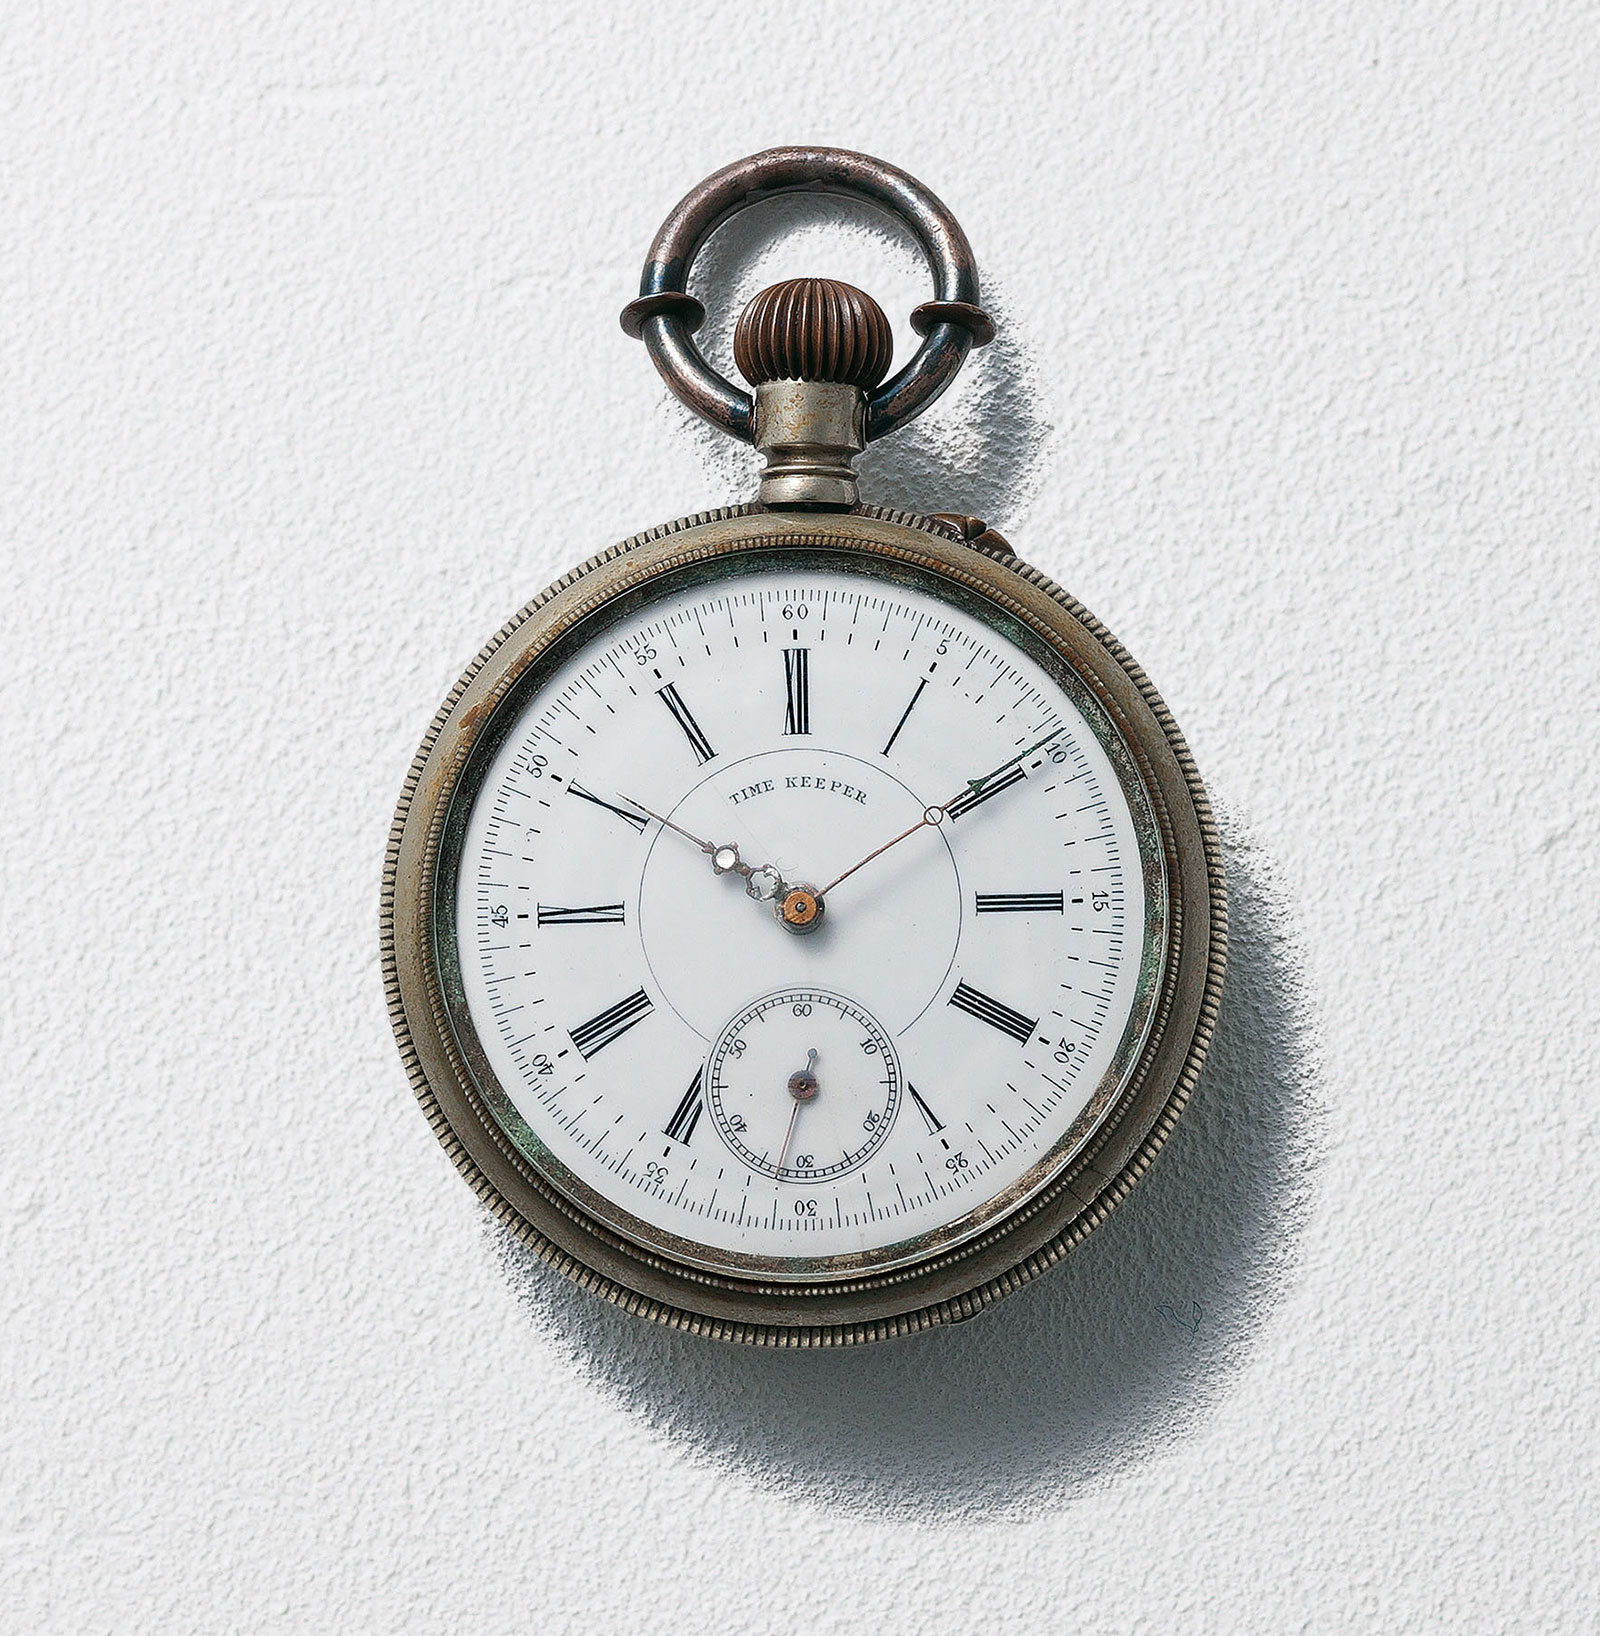 Seiko-pocket-watch-1895.jpg